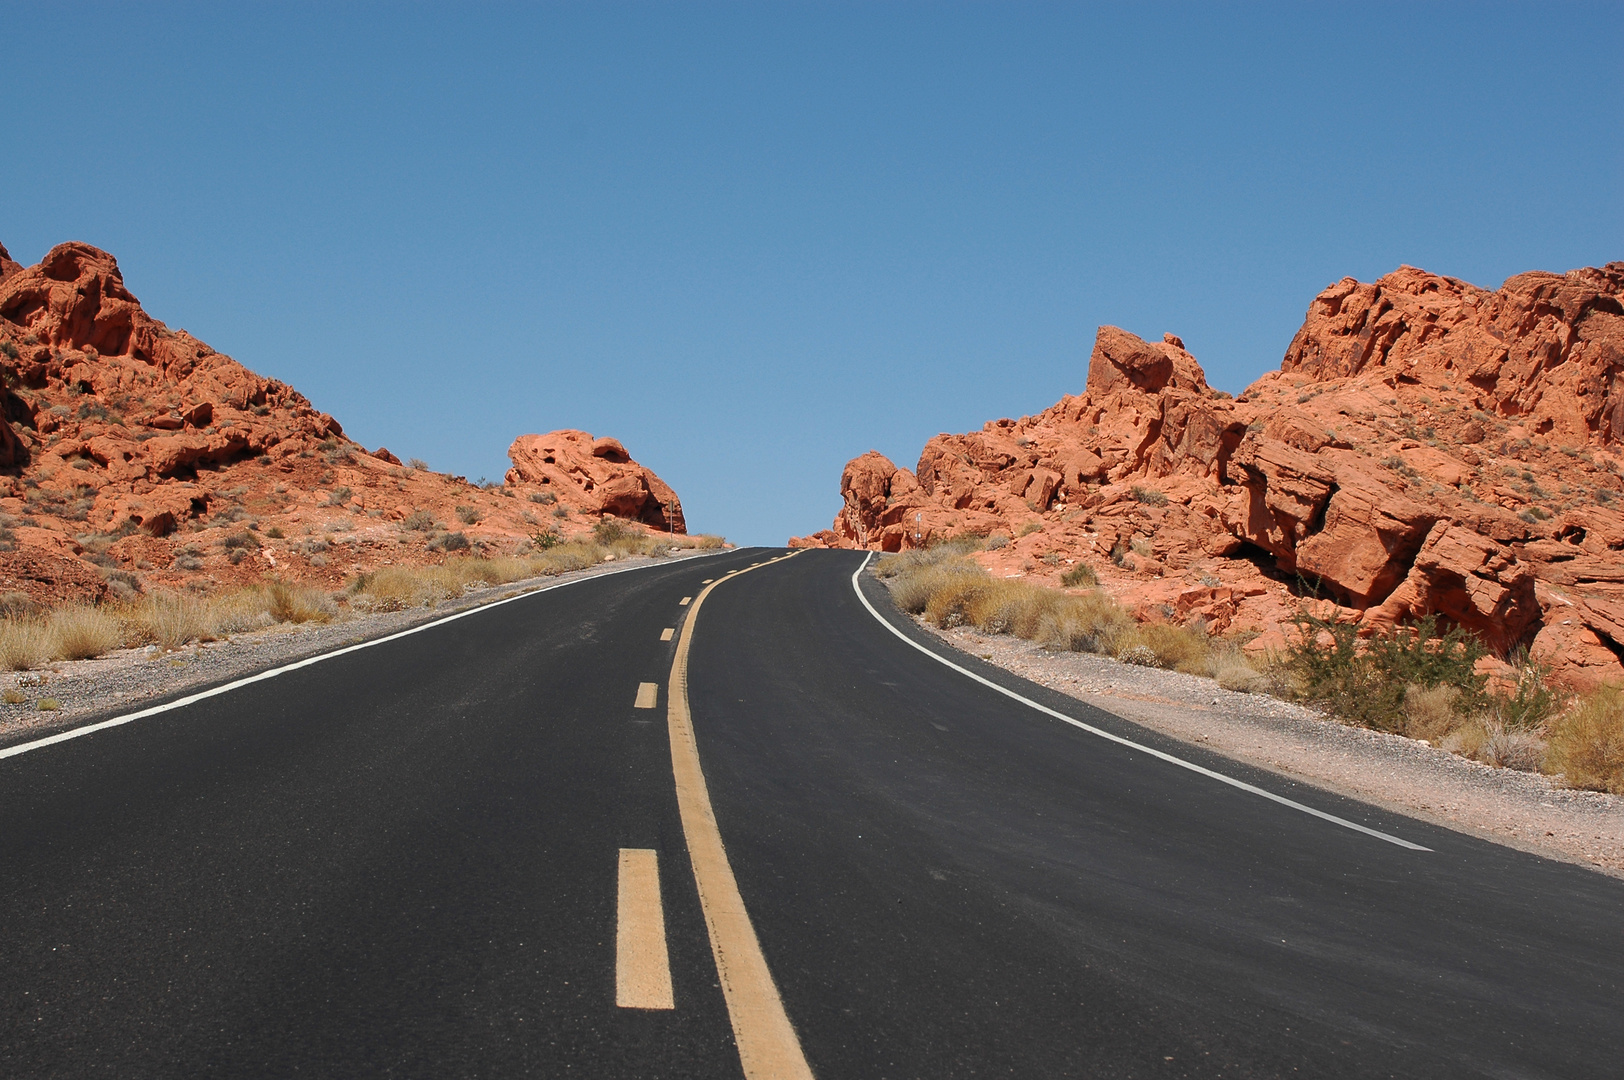 Statepark Valley of Fire, Nevada USA